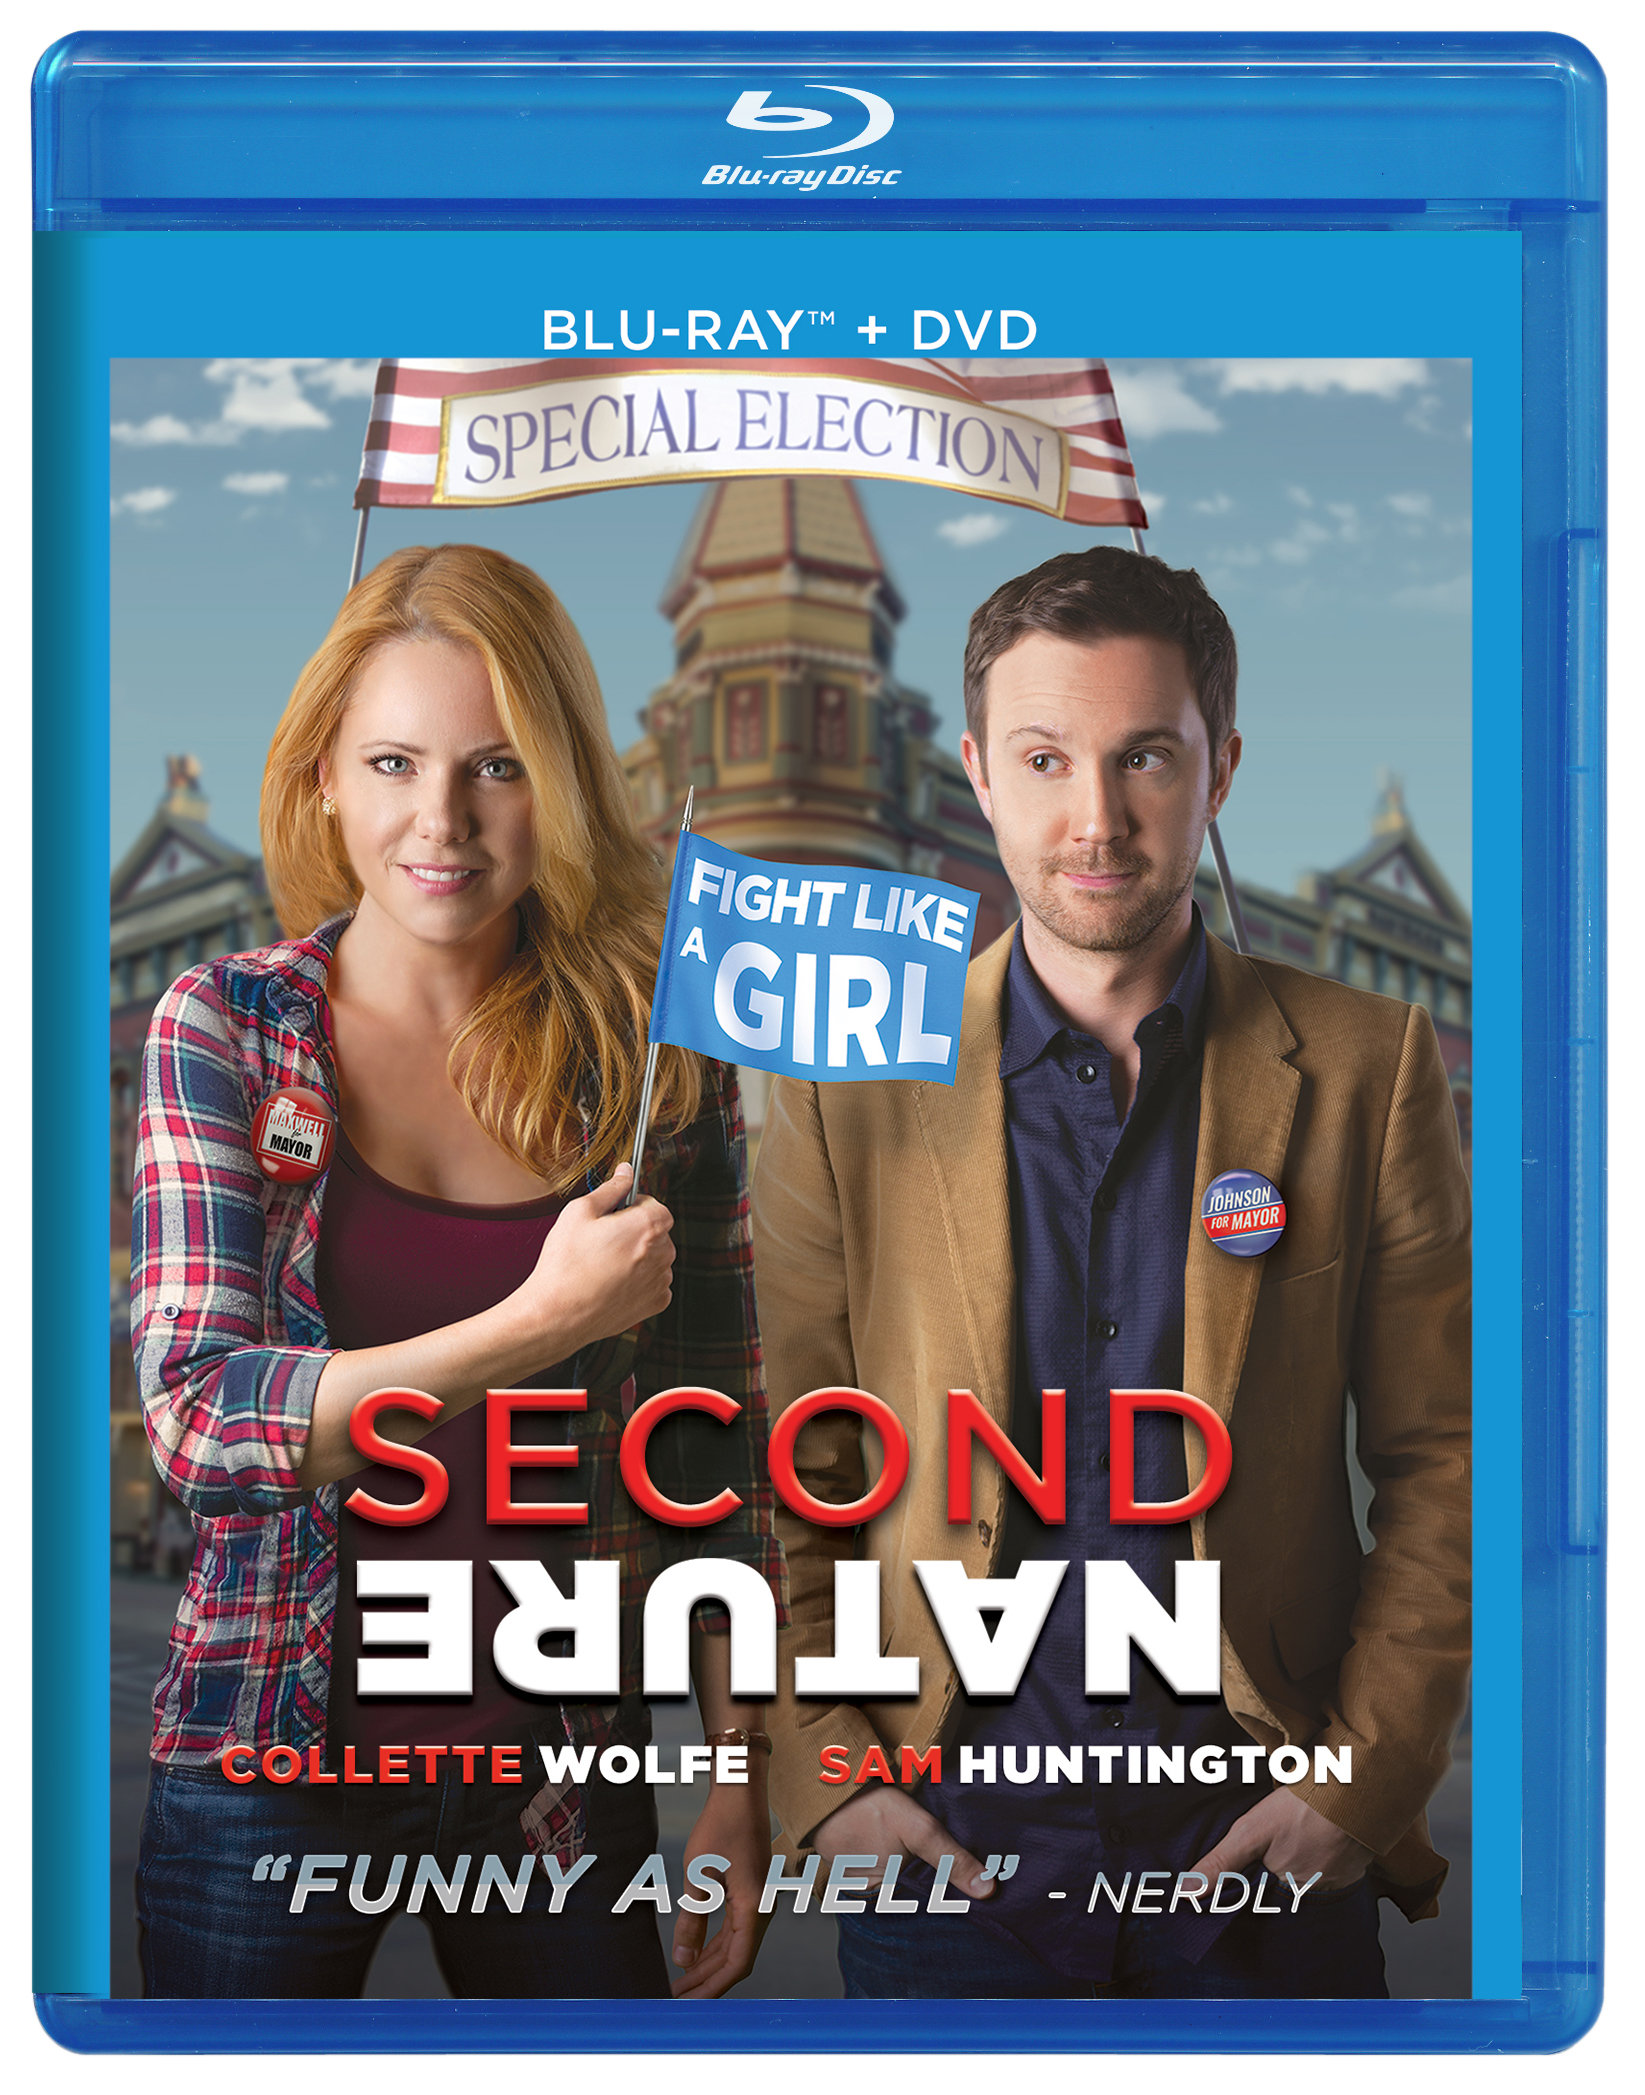 Second Nature Blu-ray + DVD Combo 00000